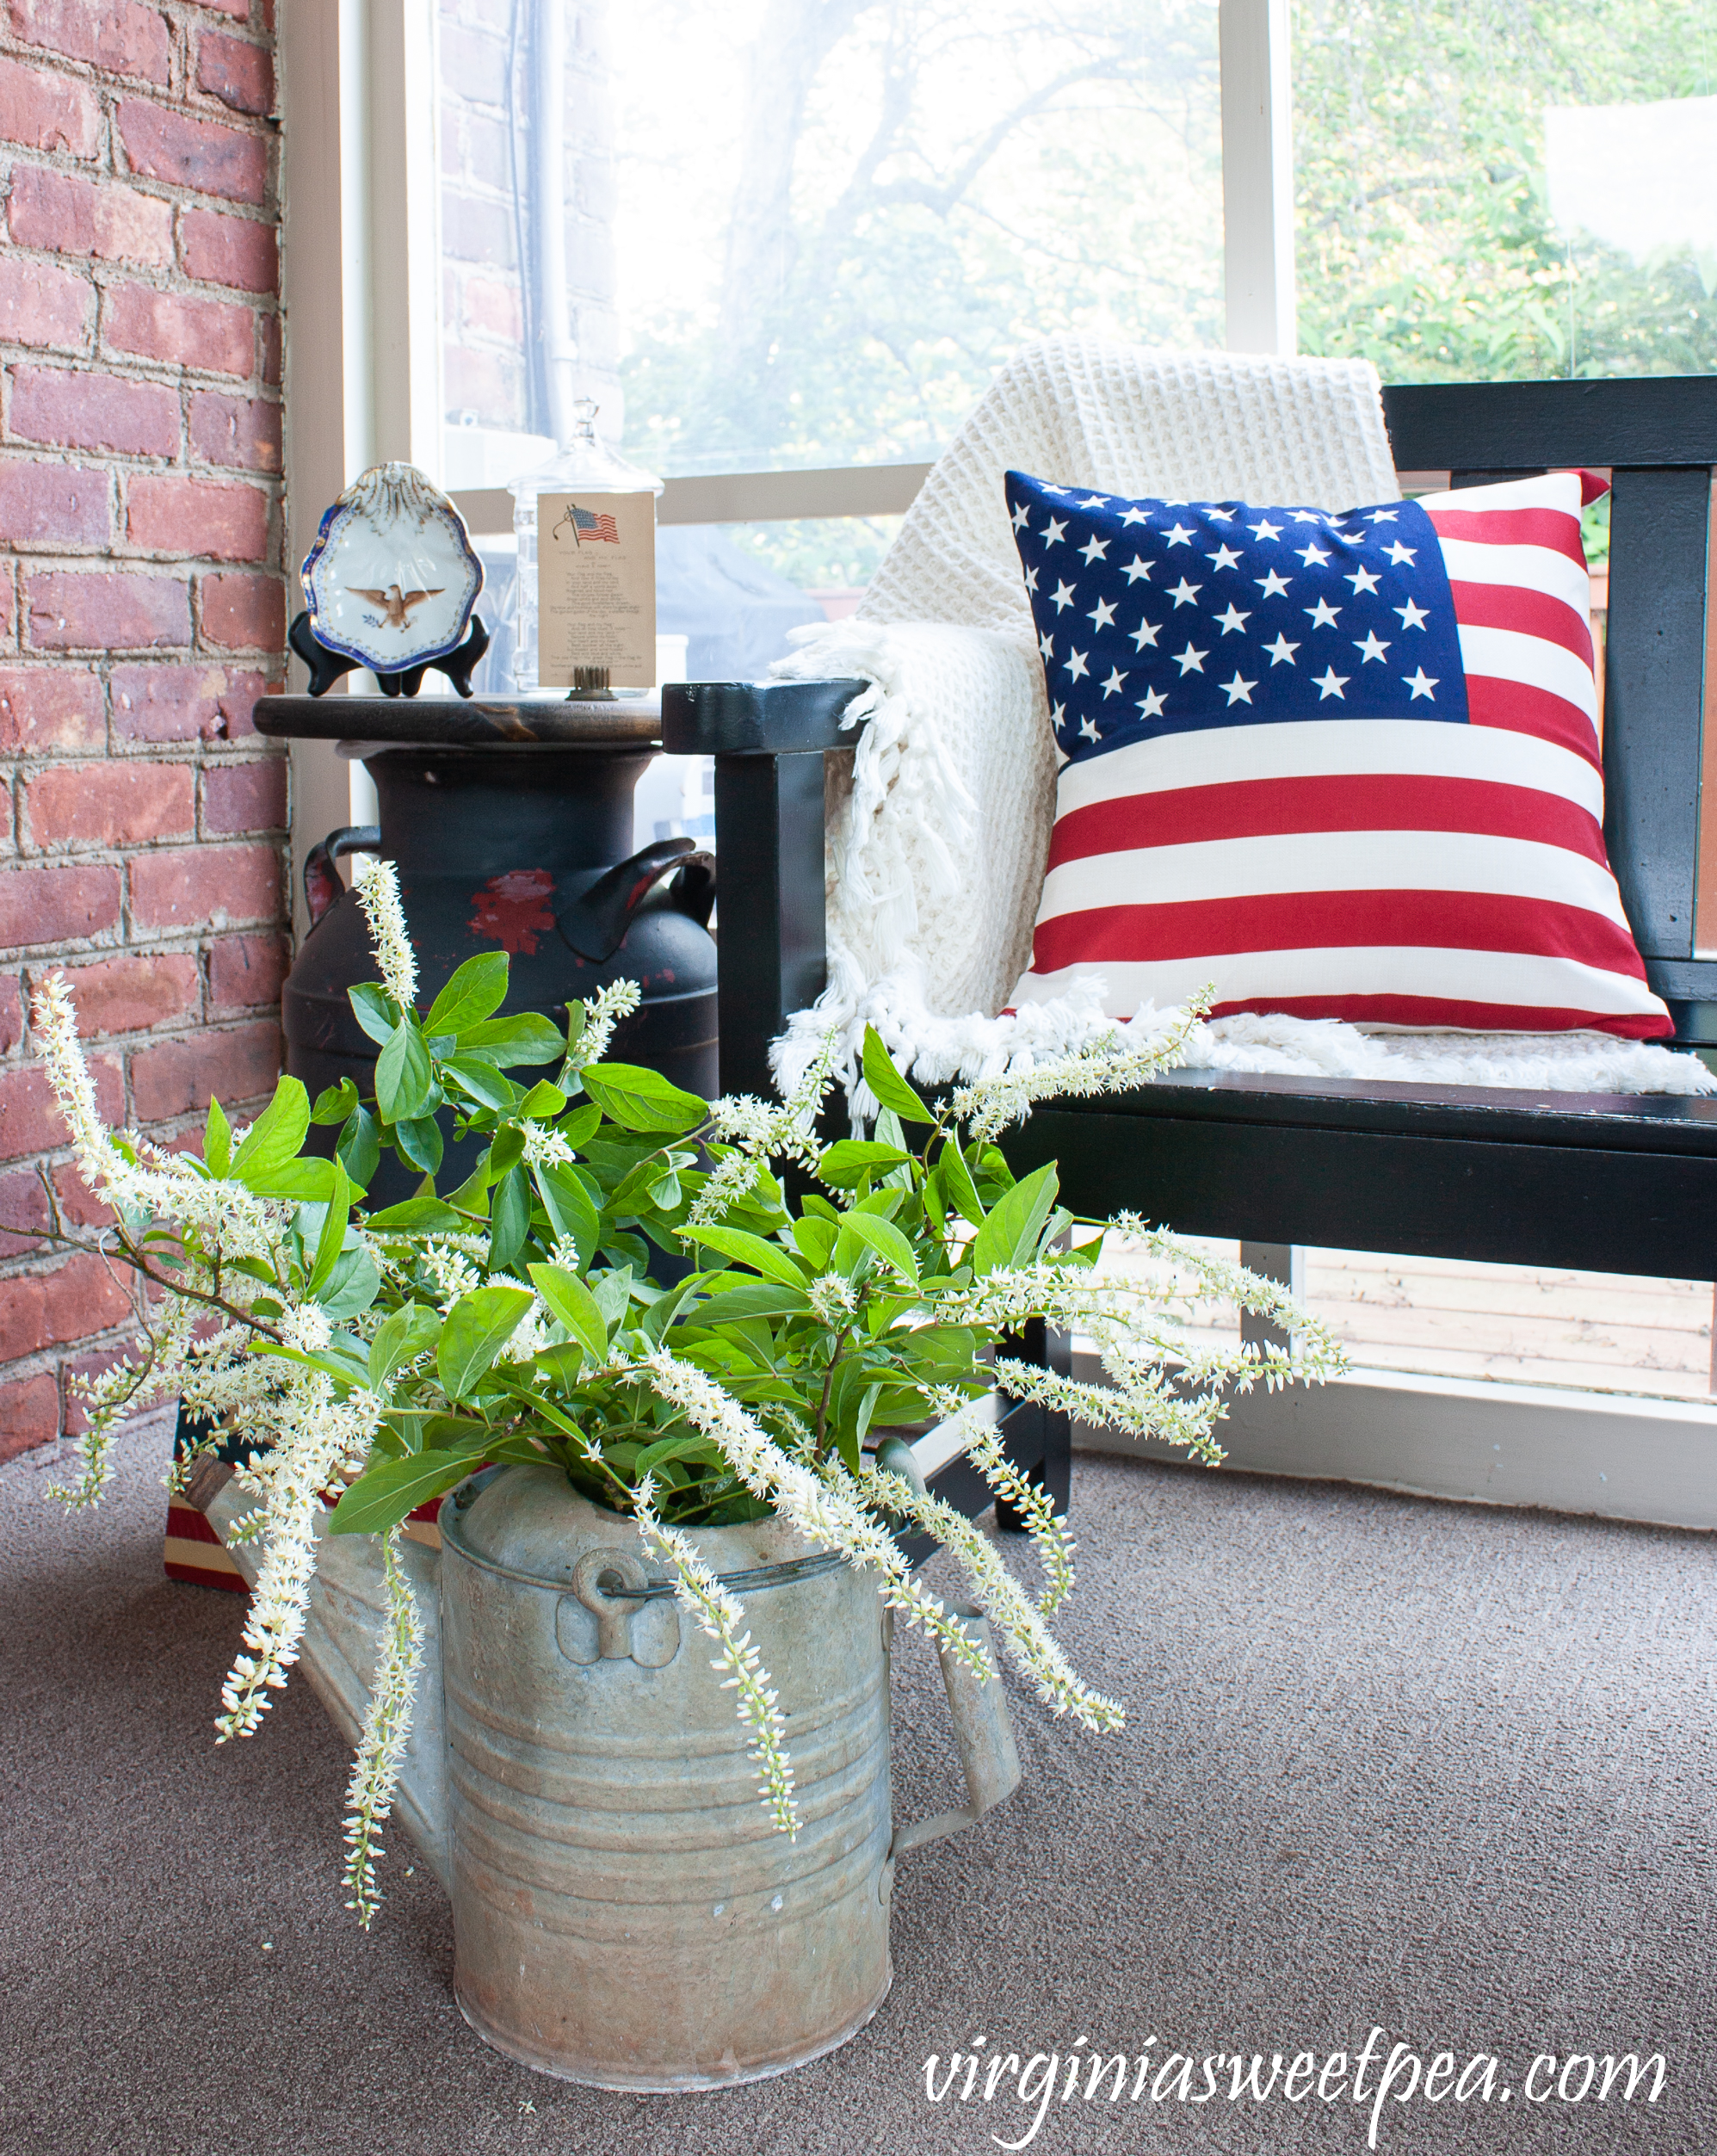 Patriotic porch decor with an American flag pillow and a vintage watering can filled with Virginia Sweetspire.